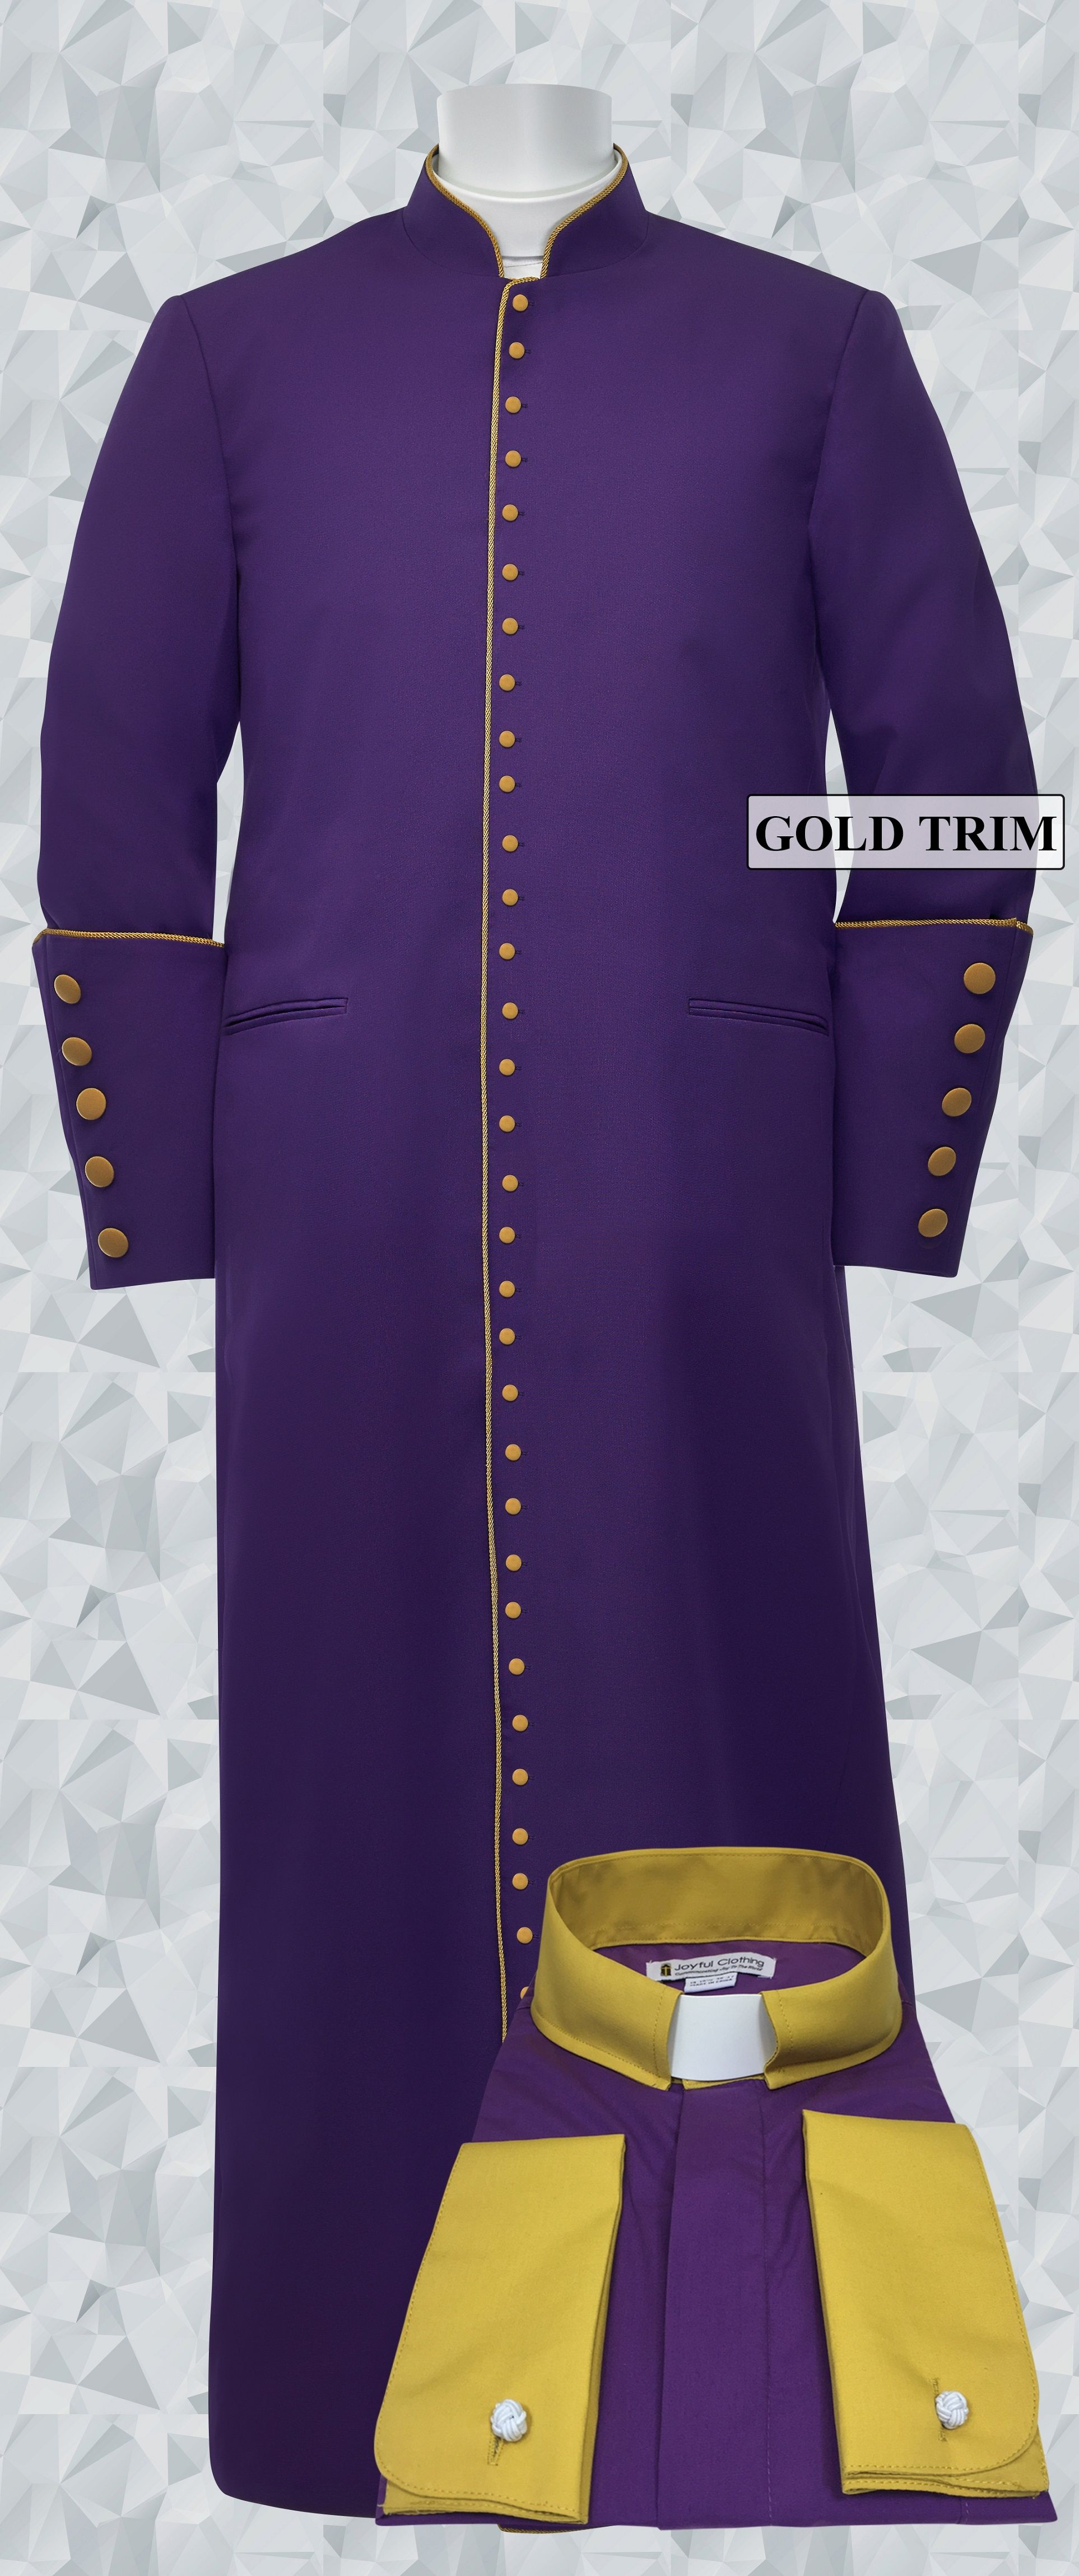 254 M. Men's Roman Cassock & Custom Shirt Package Purple/Gold